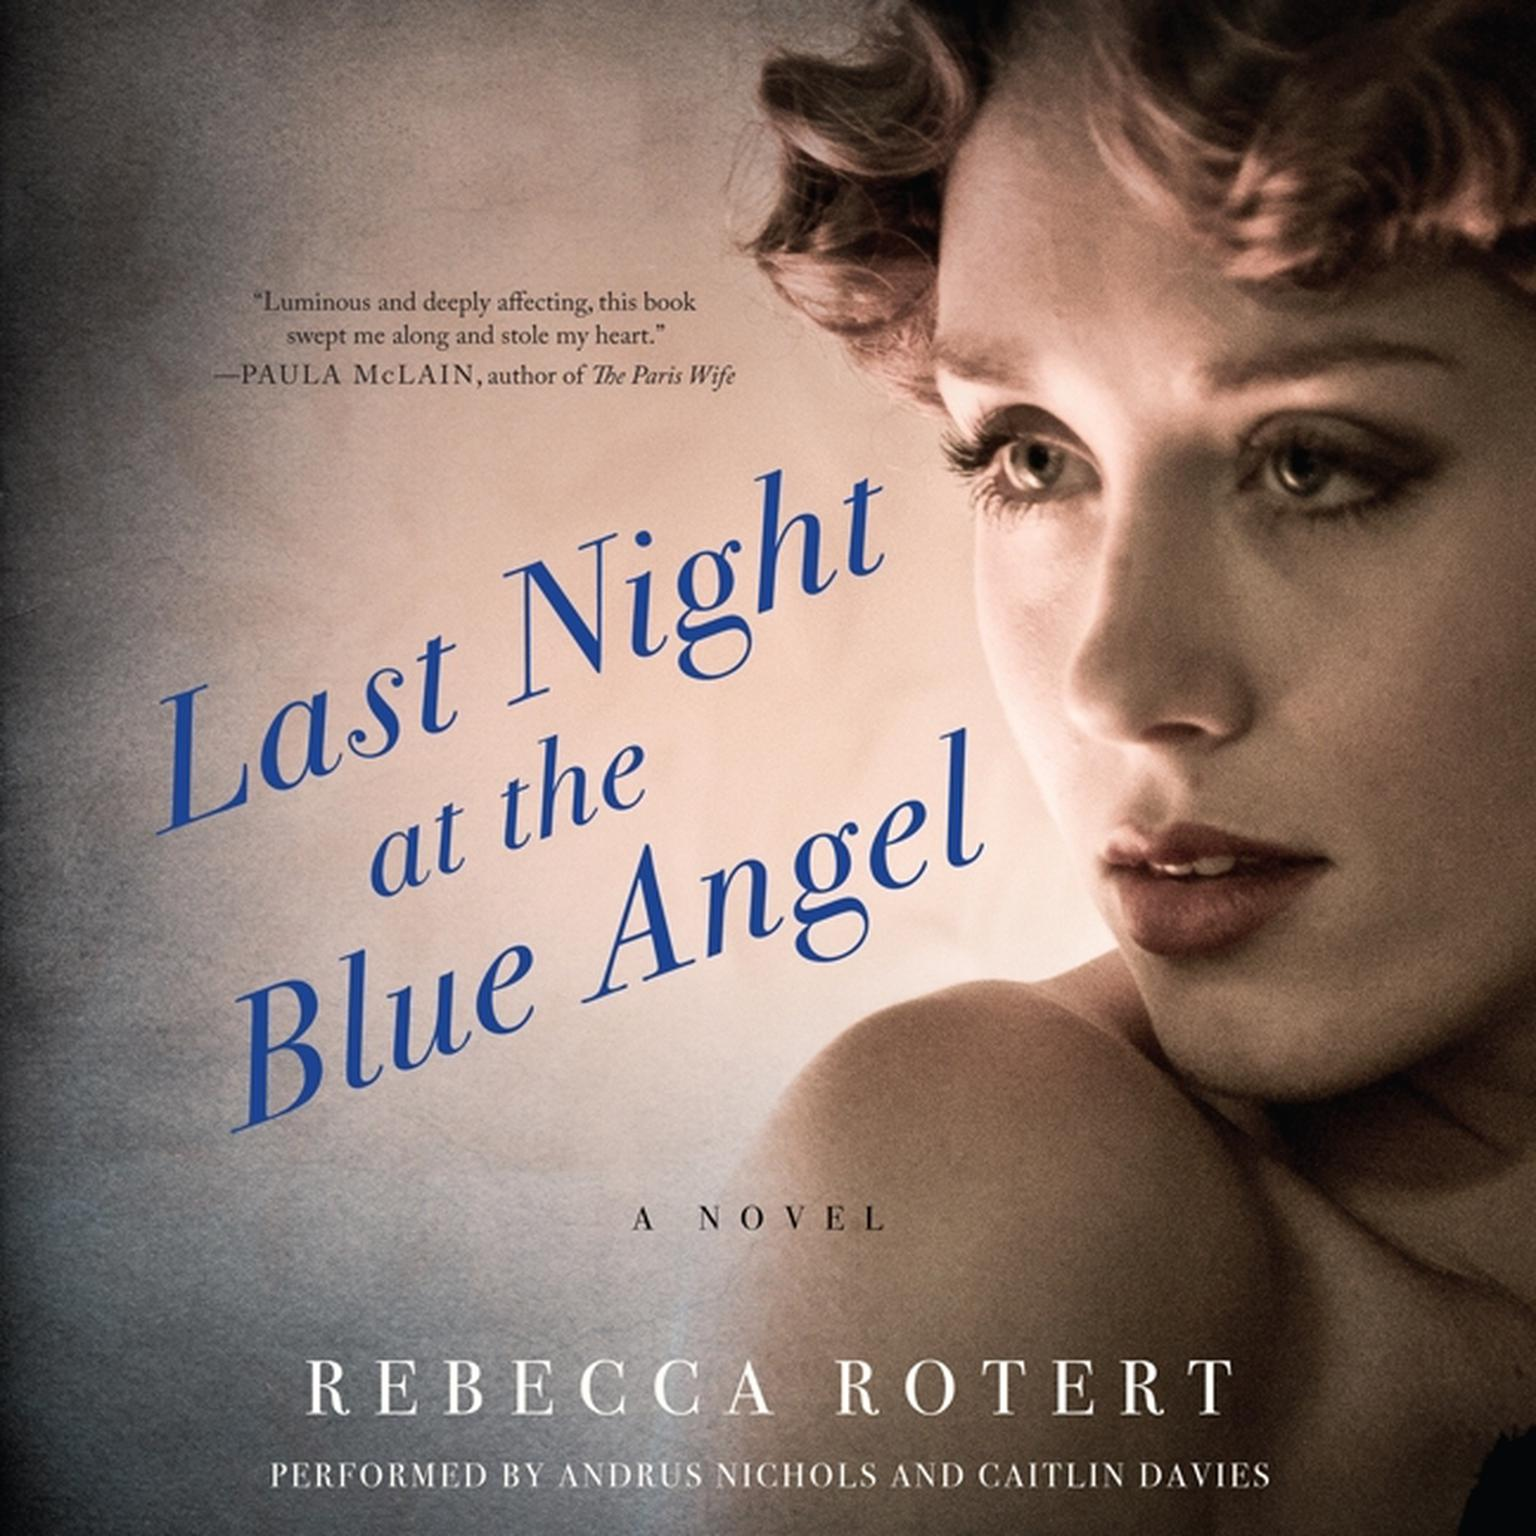 Printable Last Night at the Blue Angel: A Novel Audiobook Cover Art